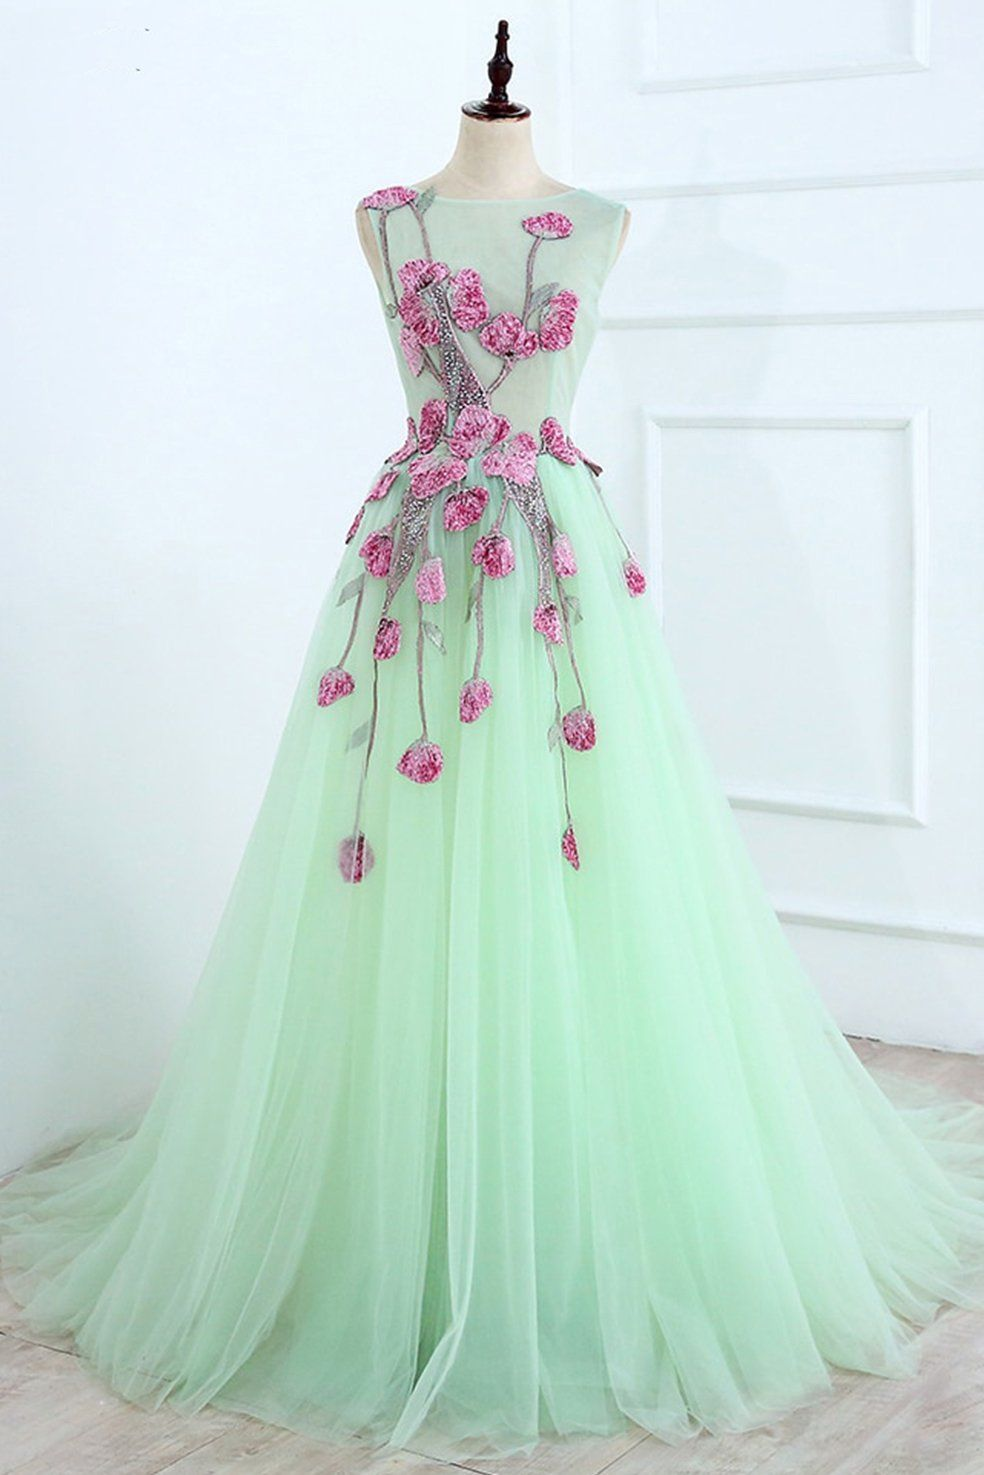 A Line Mint Green Sleeveless Tulle Formal Dress With Appliques Long Tulle Prom Dress N1465 In 2021 Floral Dress Formal Green Prom Dress Prom Dresses Long [ 1475 x 984 Pixel ]